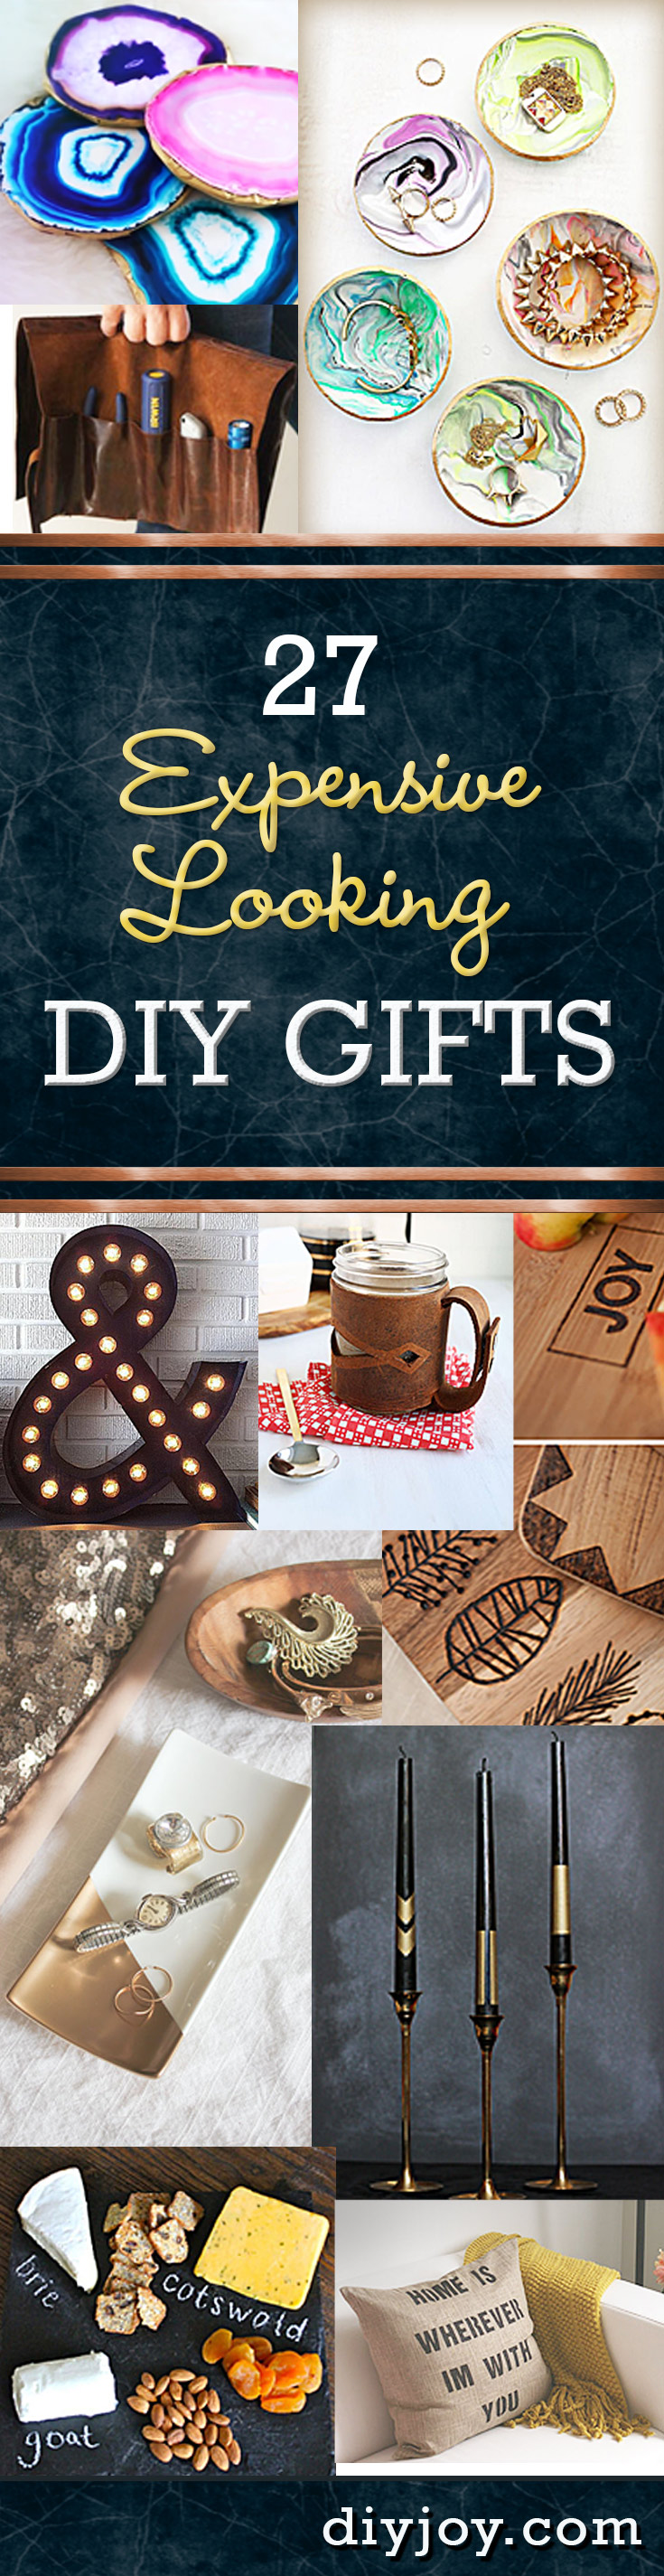 Inexpensive DIY Gifts To Make For Christmas & Birthdays | DIY JOY Crafts